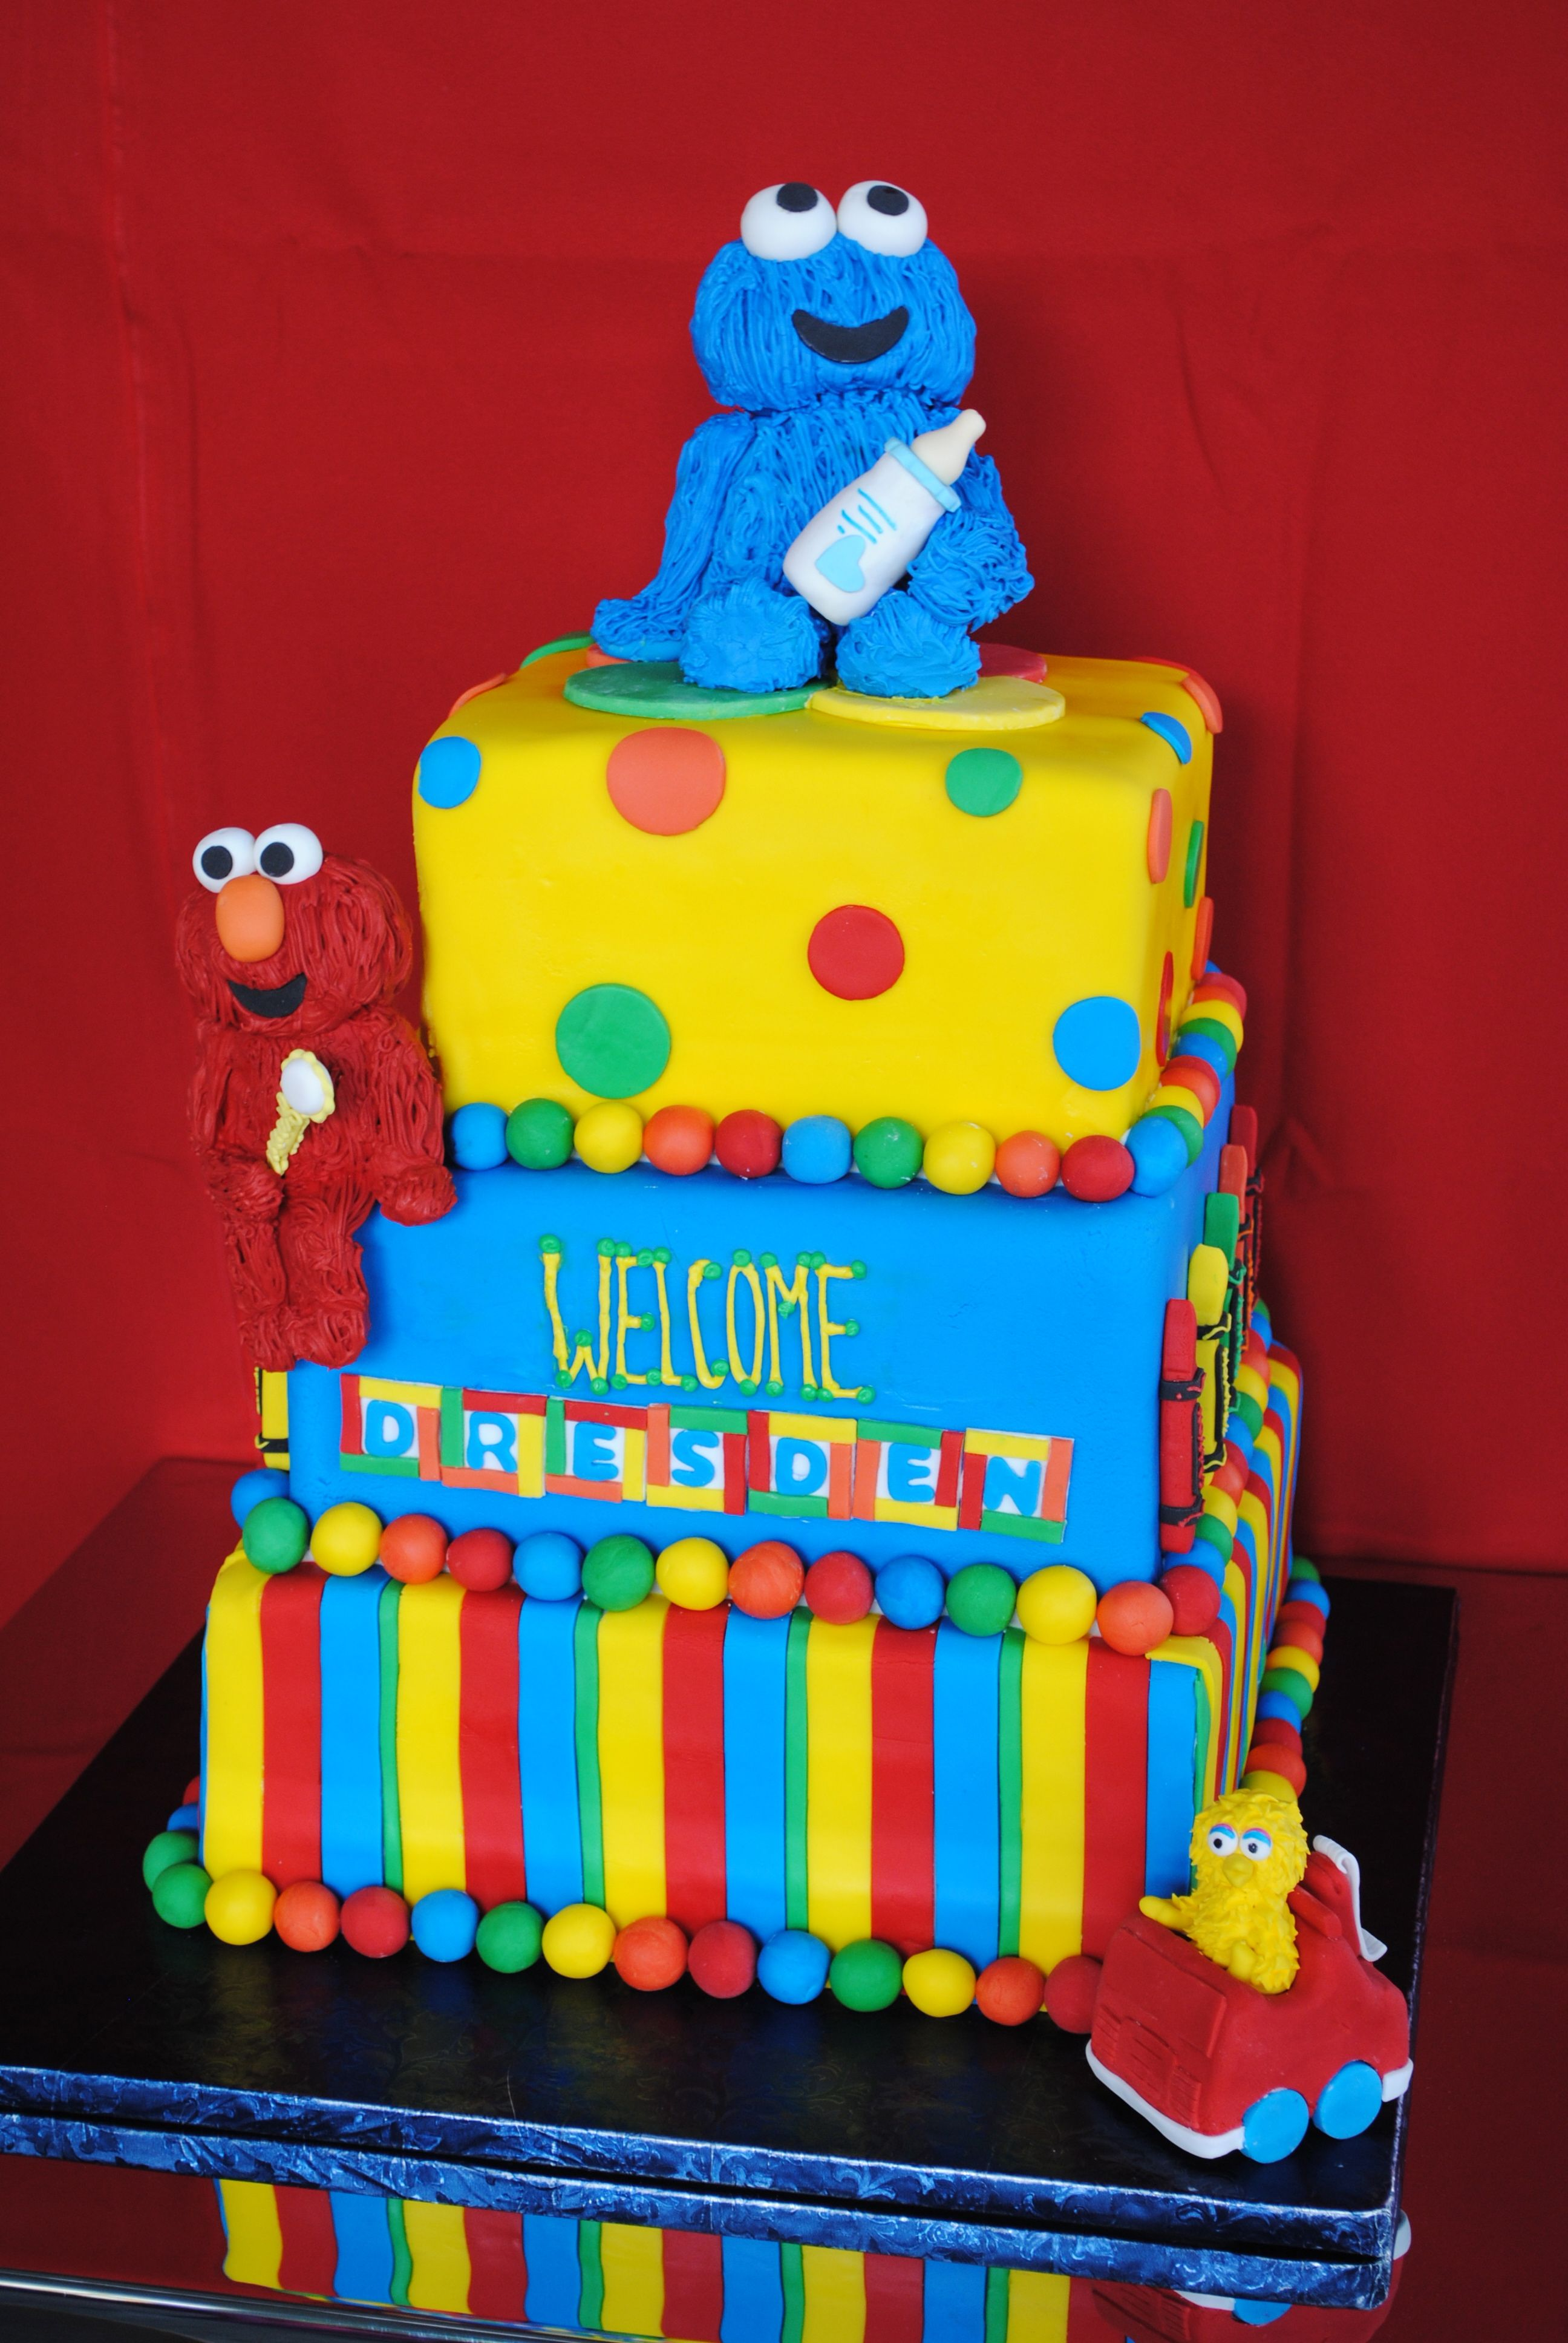 How Great Is This Sesame Street Cake That We Made? So Fun For A Babyu0027s